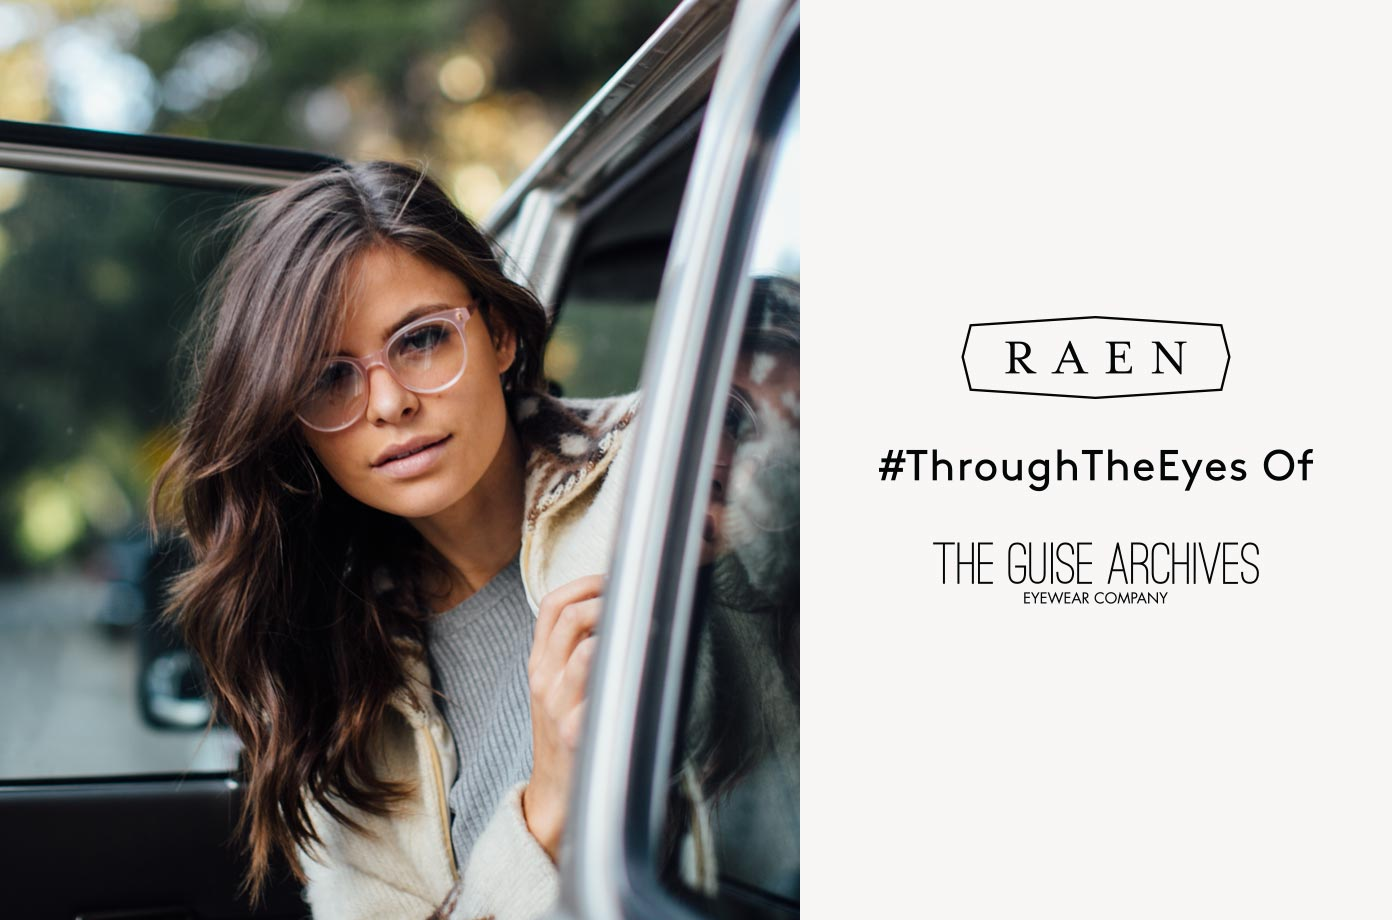 #ThroughTheEyes of The Guise Archives Eyewear Co.